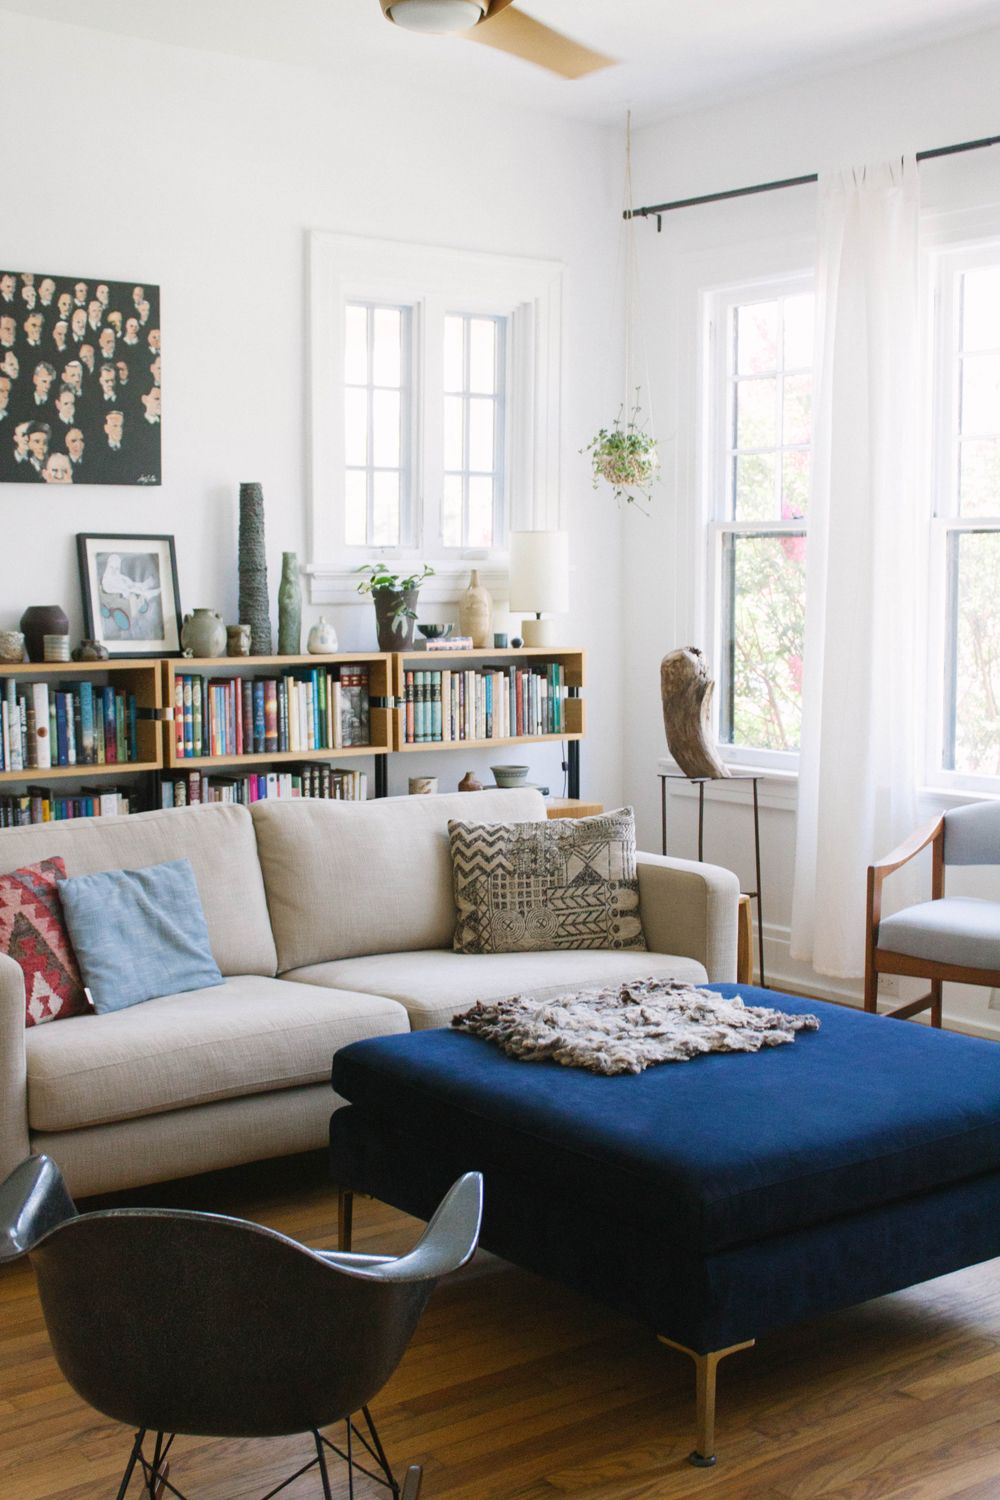 Living Room Additions | Good Bones | Spaces | Pinterest | Room ...